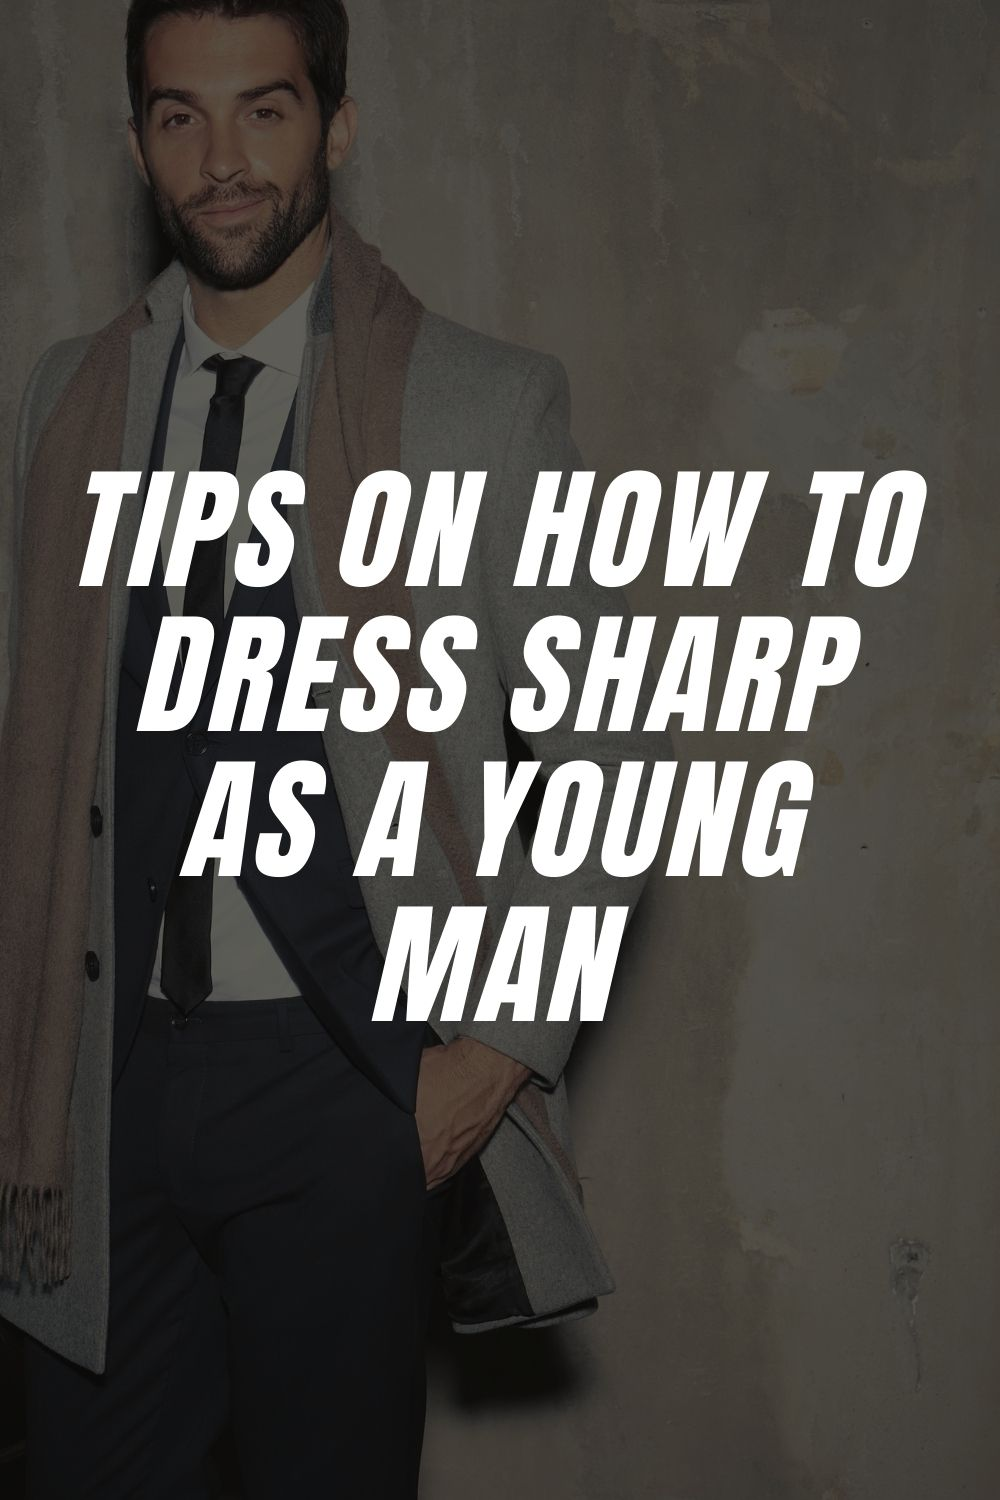 Tips on How to Dress Sharp as a Young Man